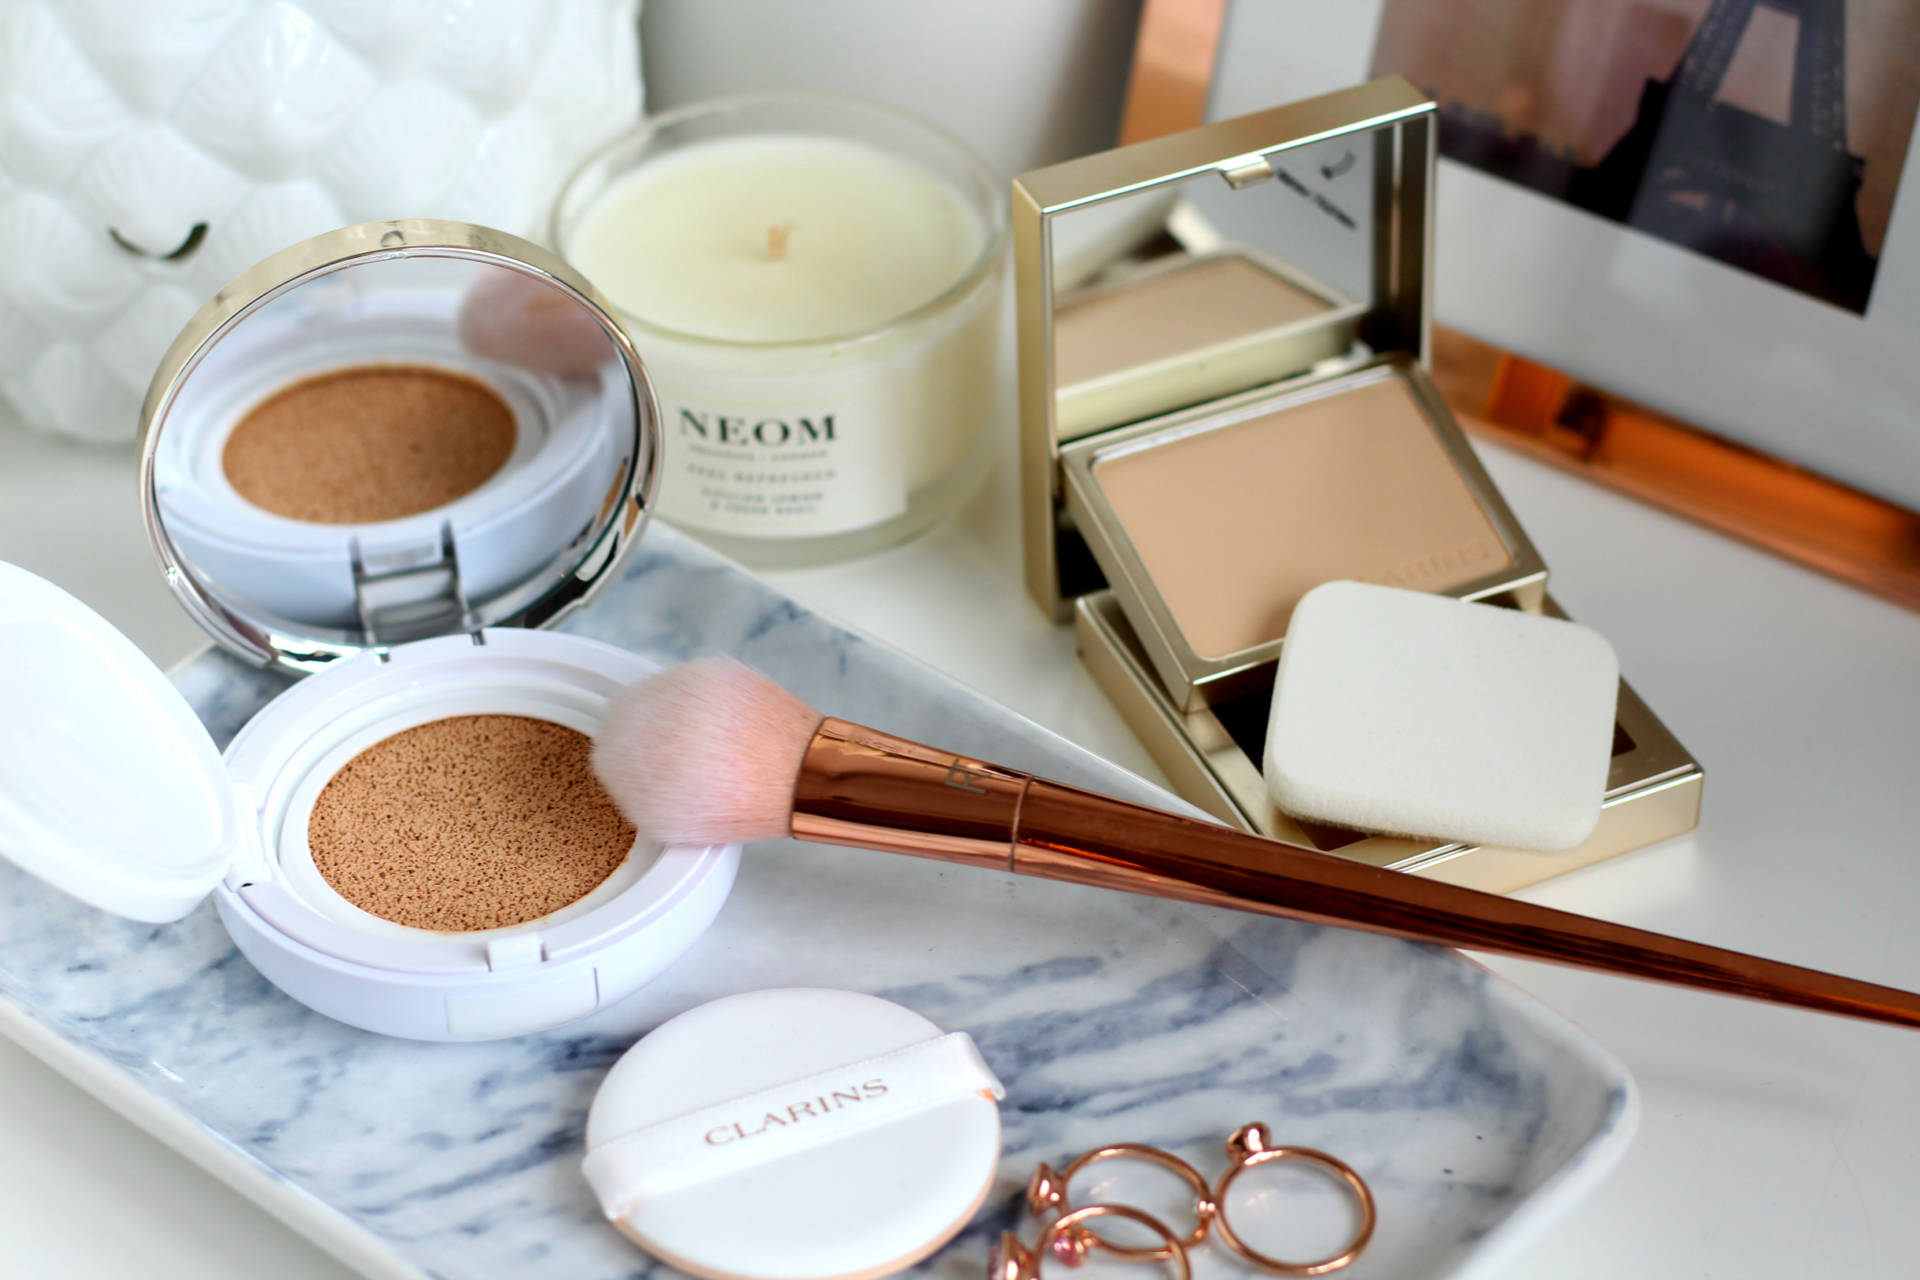 Two new flawless foundations from Clarins